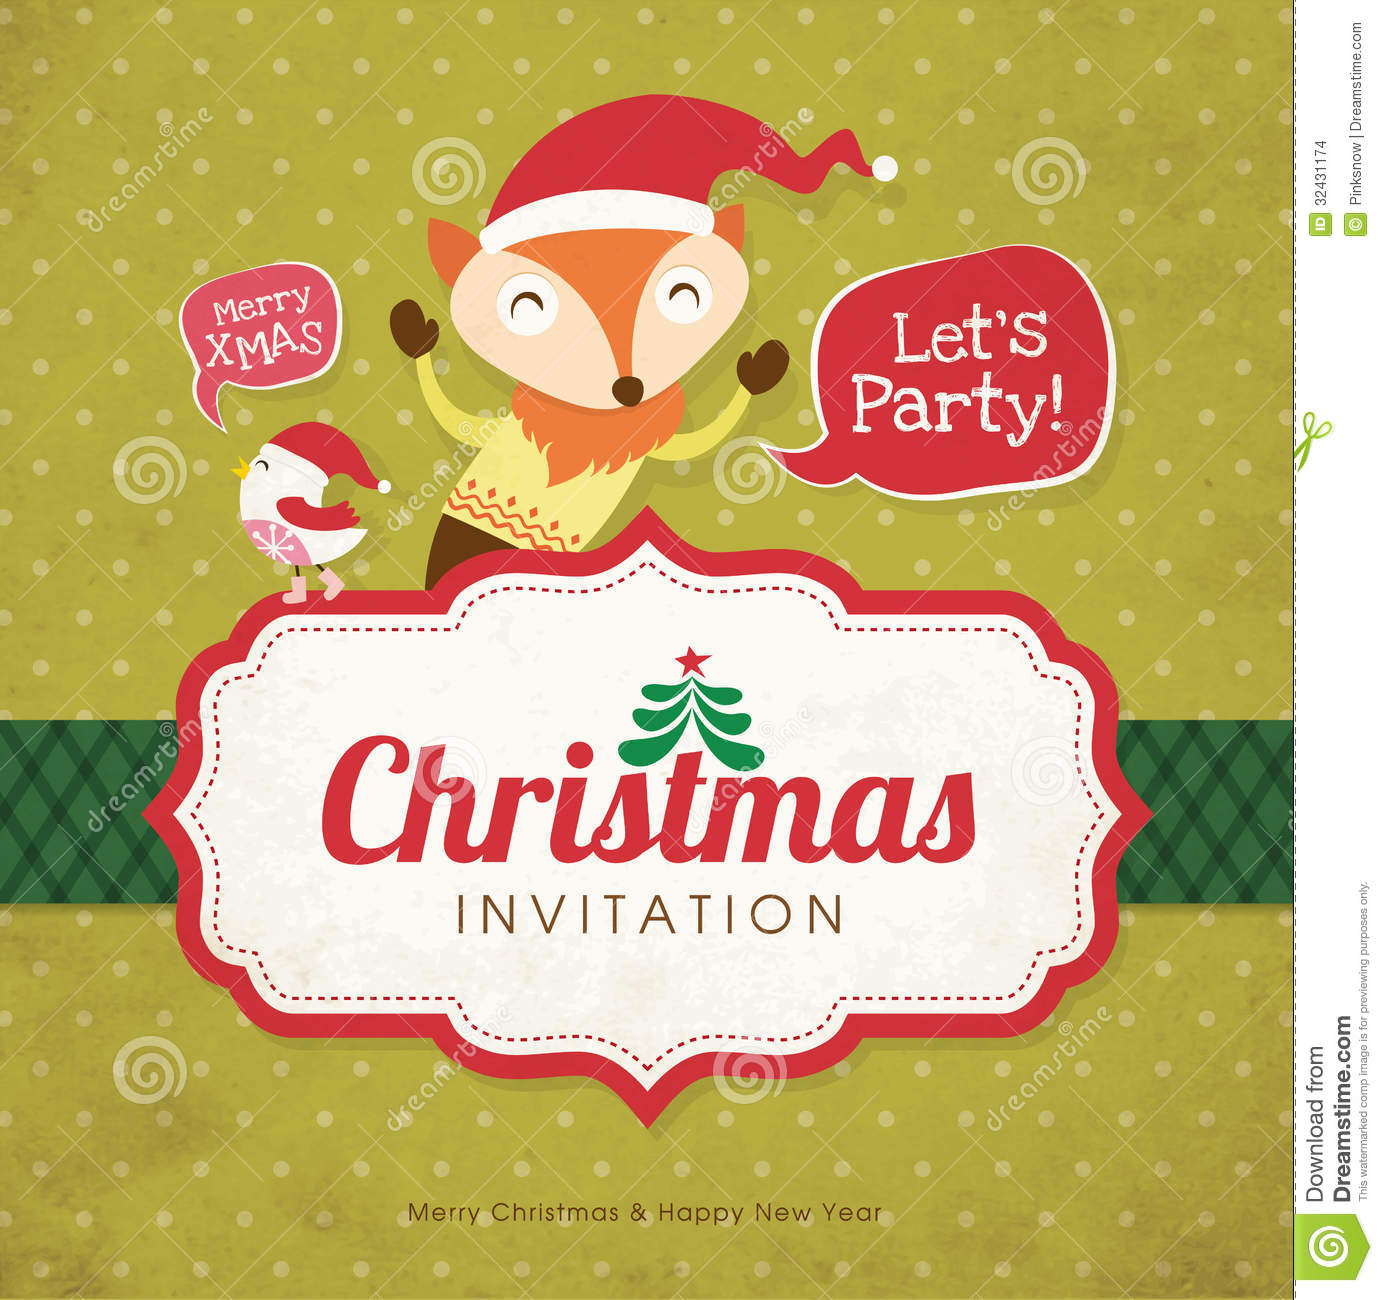 christmas cards invitation christmas invitation cards christmas invitation card stock images image 32431174